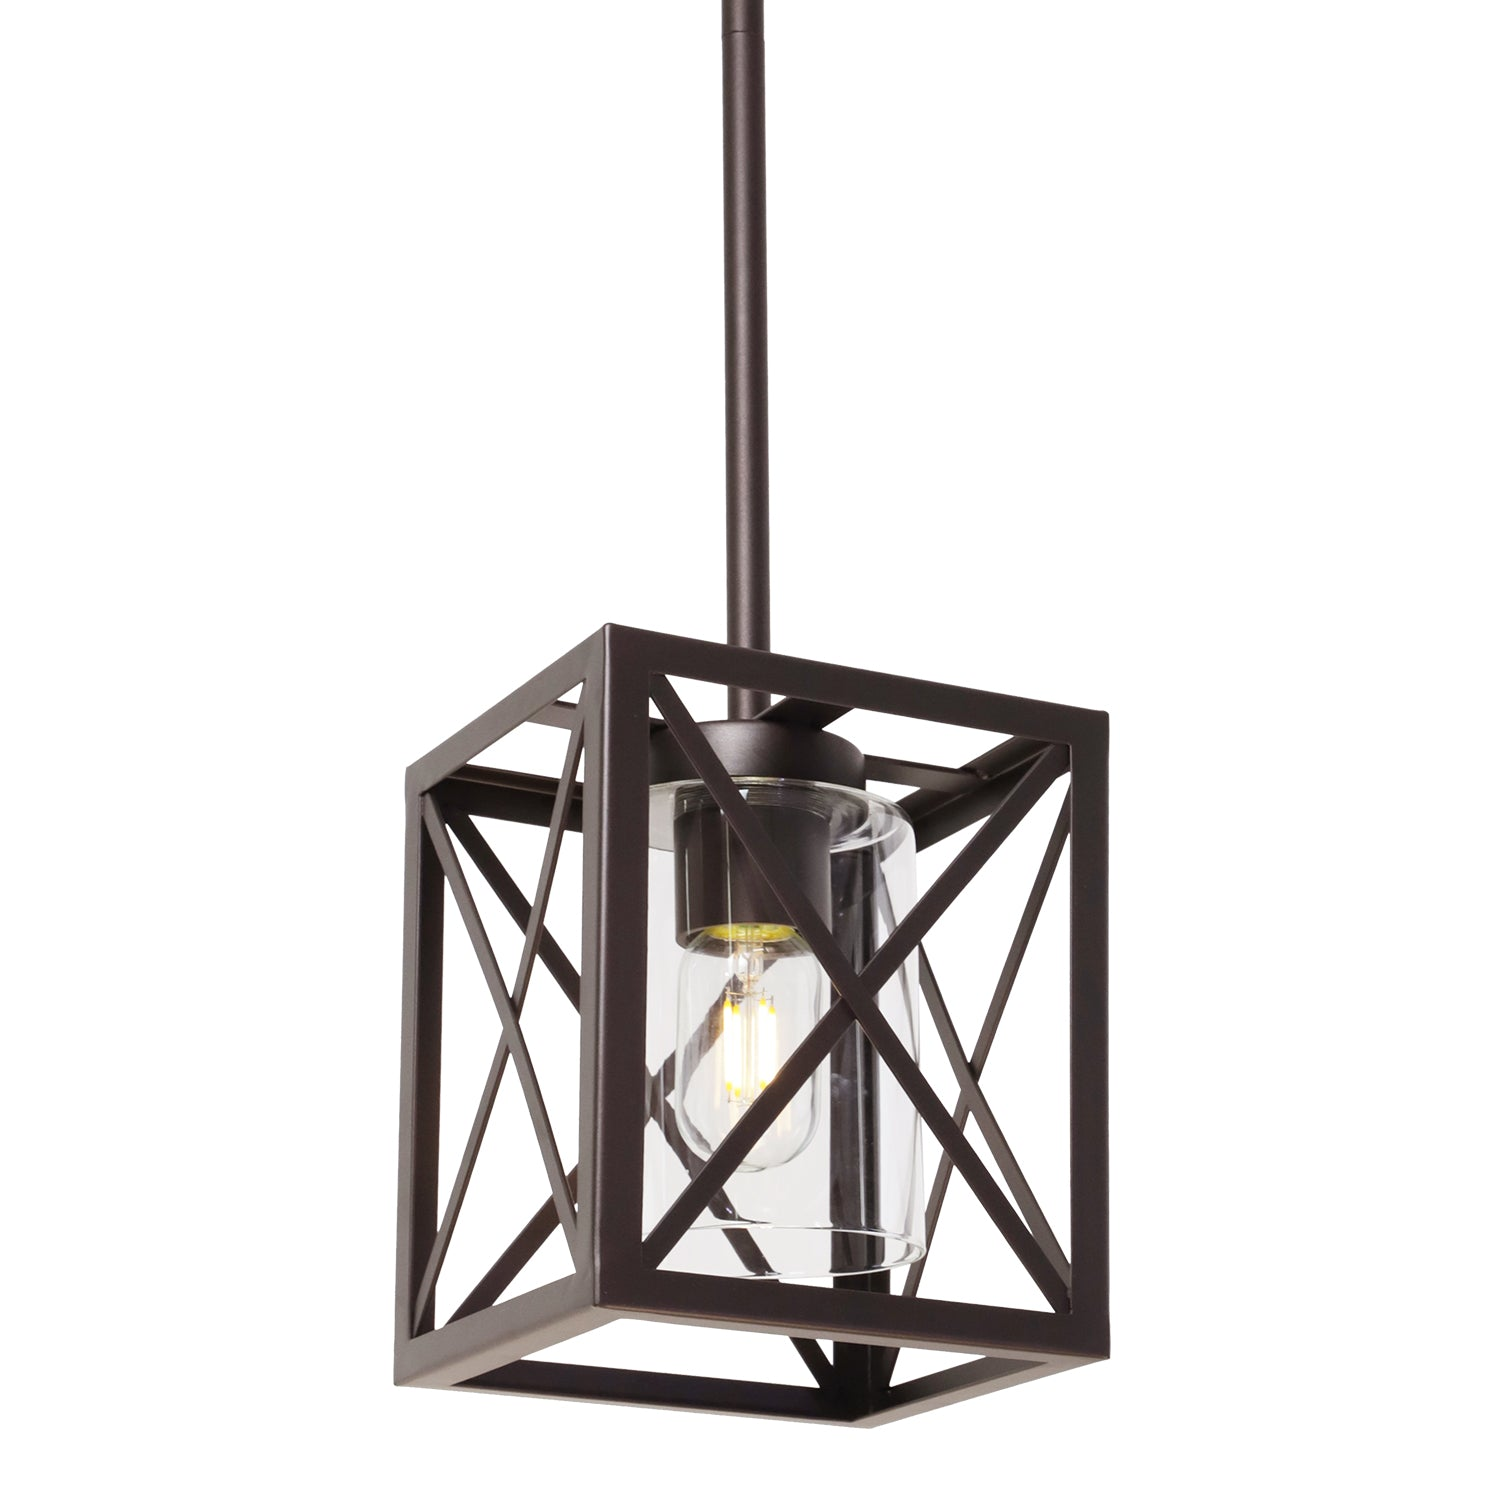 Pendant Lighting For Kitchen Island Farmhouse Dining Room Light Rustic Chandelier Metal Oil Rubbed Bronze 1 Light With Clear Glass Shade Bonlicht Lighting